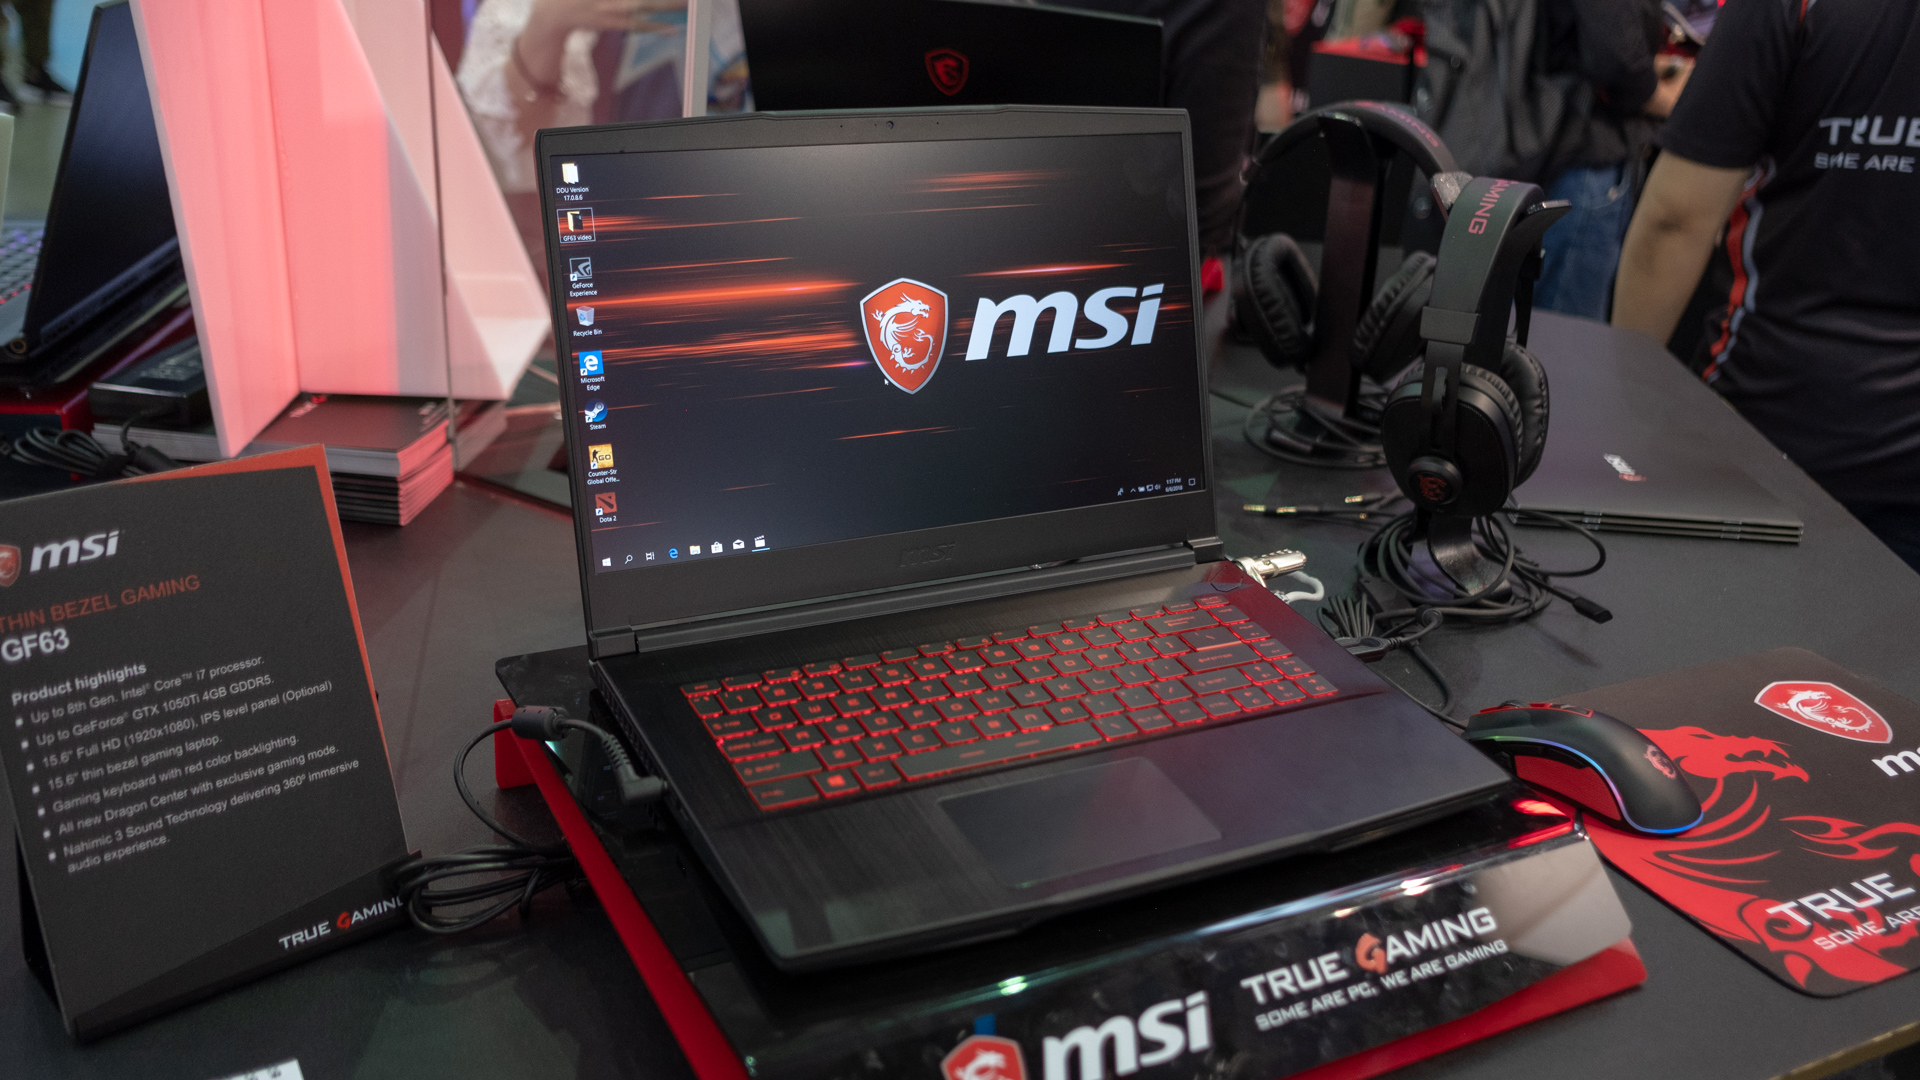 350826b294d4 Hands on: MSI GF63 review | TechRadar